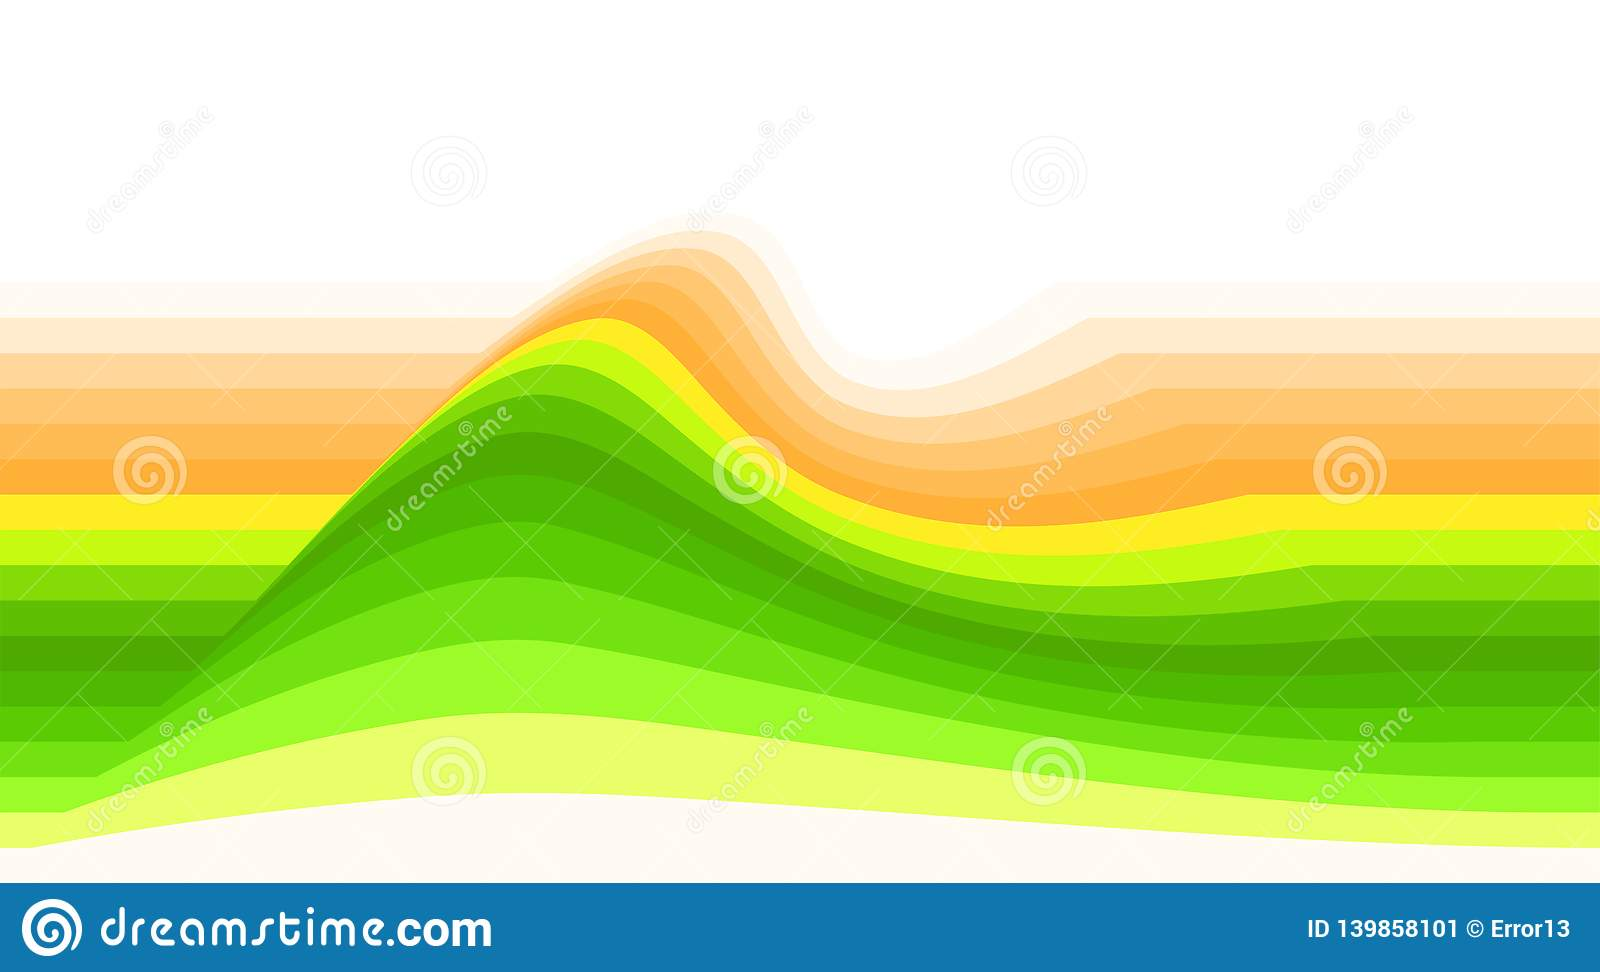 Striped Background With Yellow Green And Orange Wave Vector